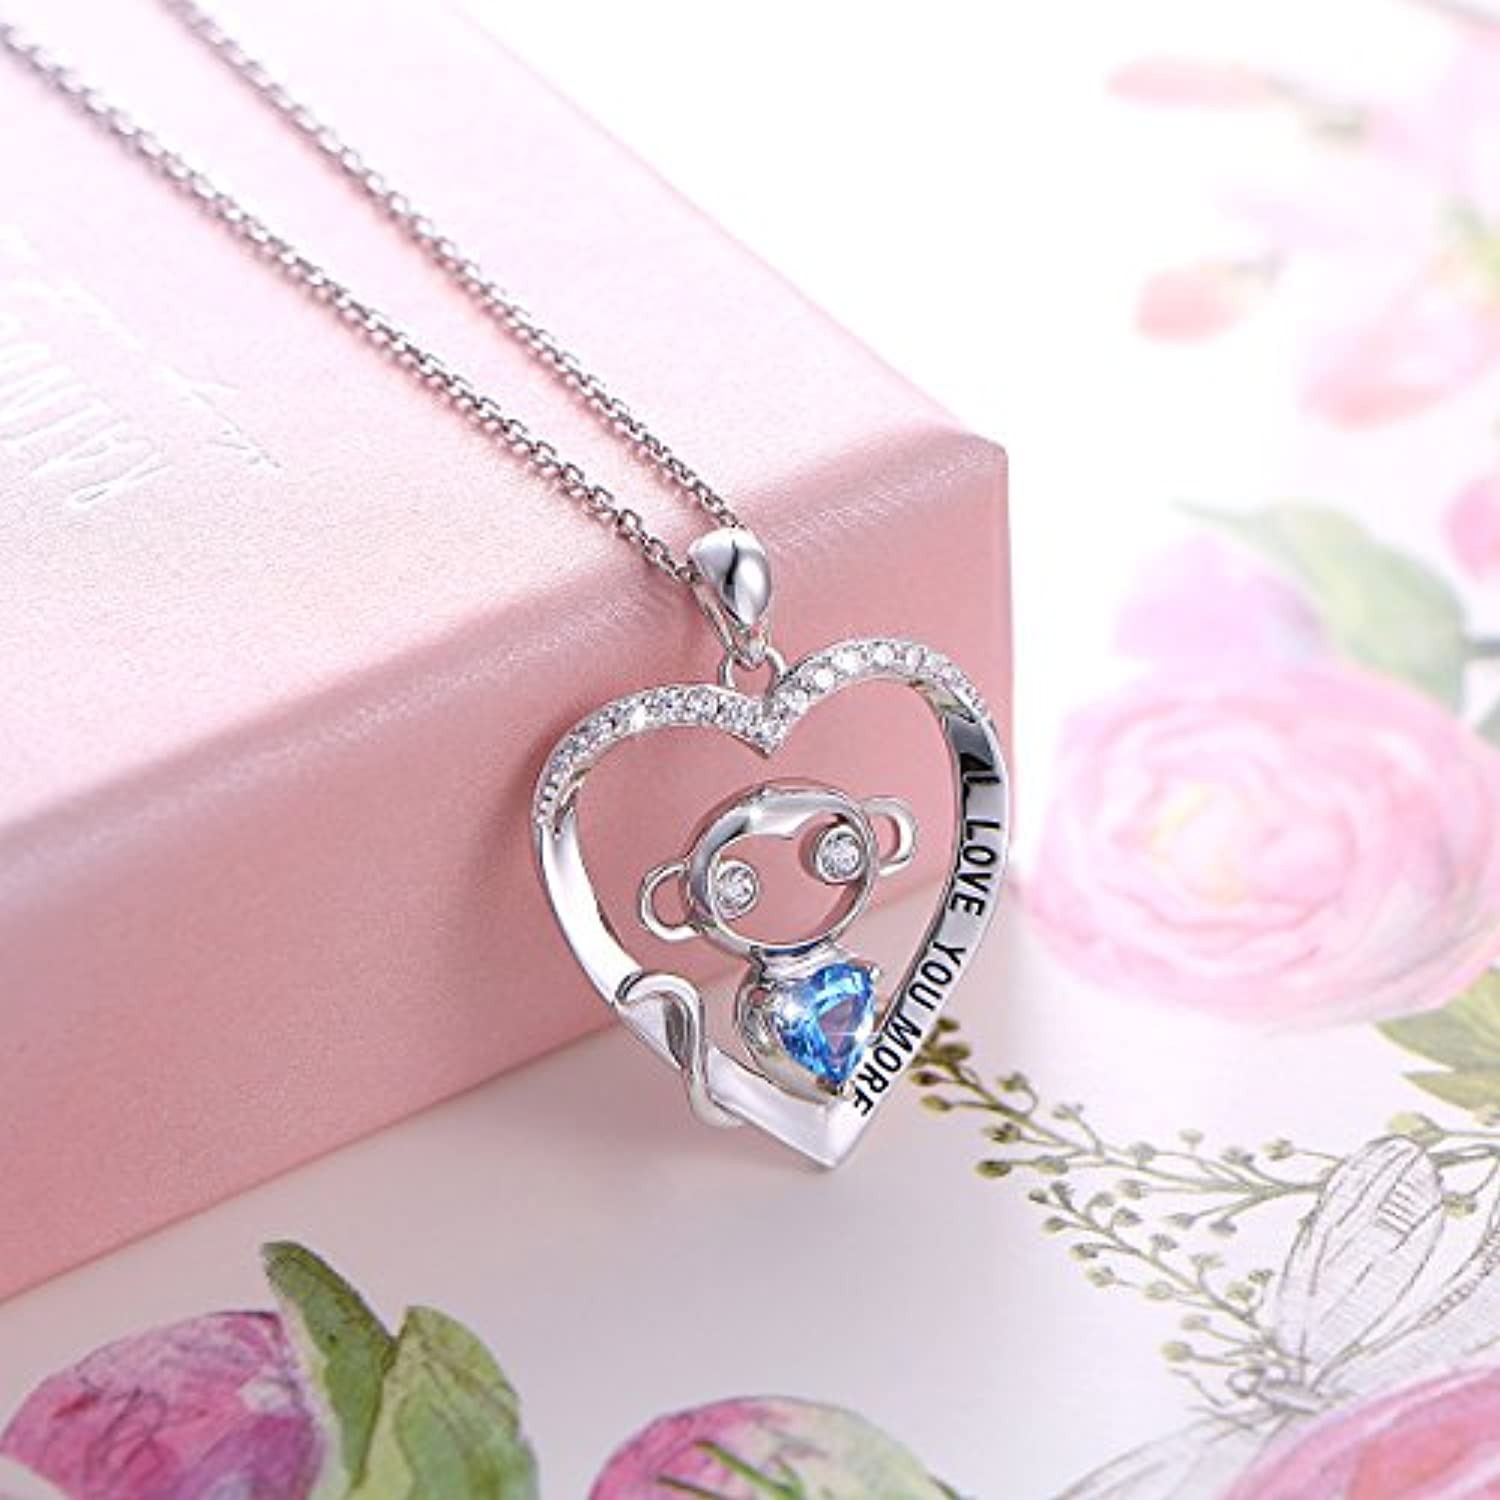 925 Sterling Silver I Love You More Engraved Cute Animal Monkey in Heart Pendant Necklace for Women Girls Birthday Gift